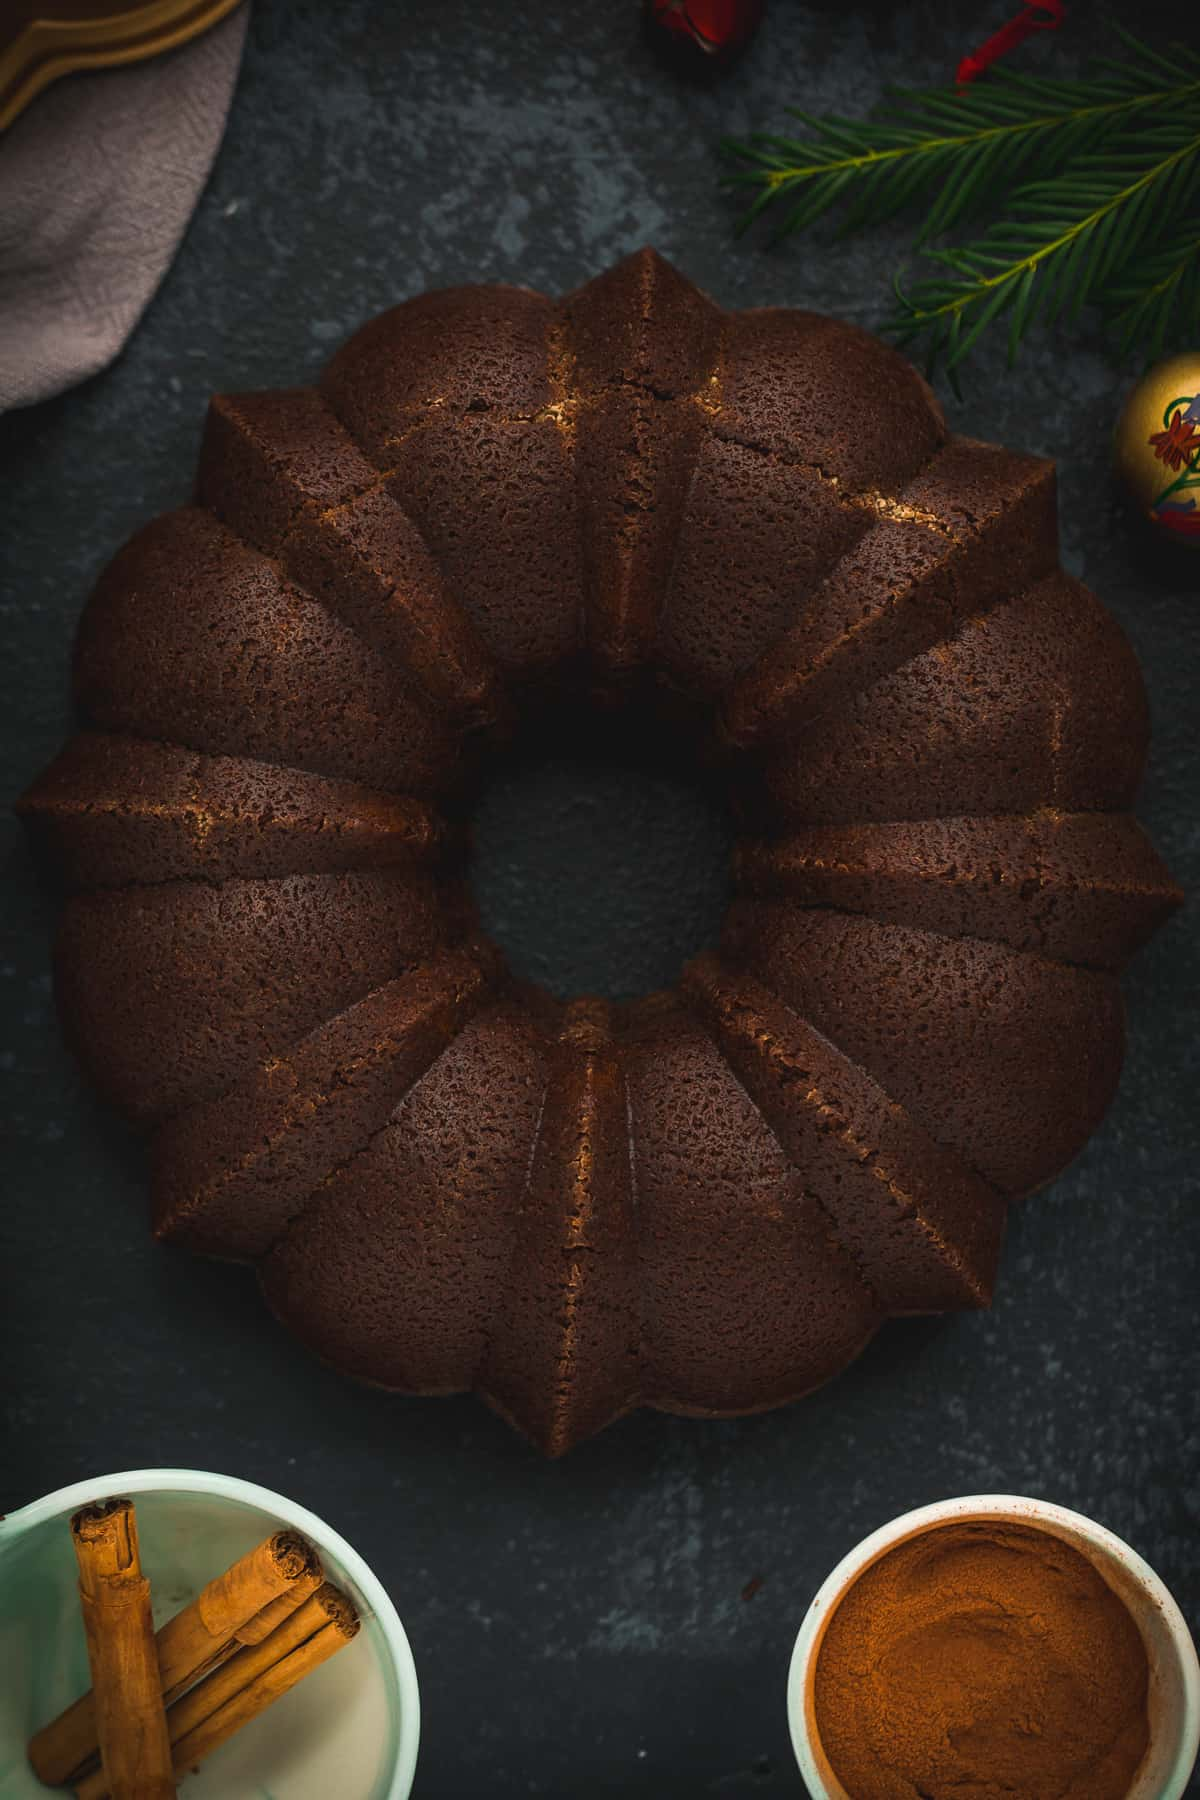 A ginger cake on a very dark background. There is a bowl of ground ginger next to it and another bowl with cinnamon sticks.